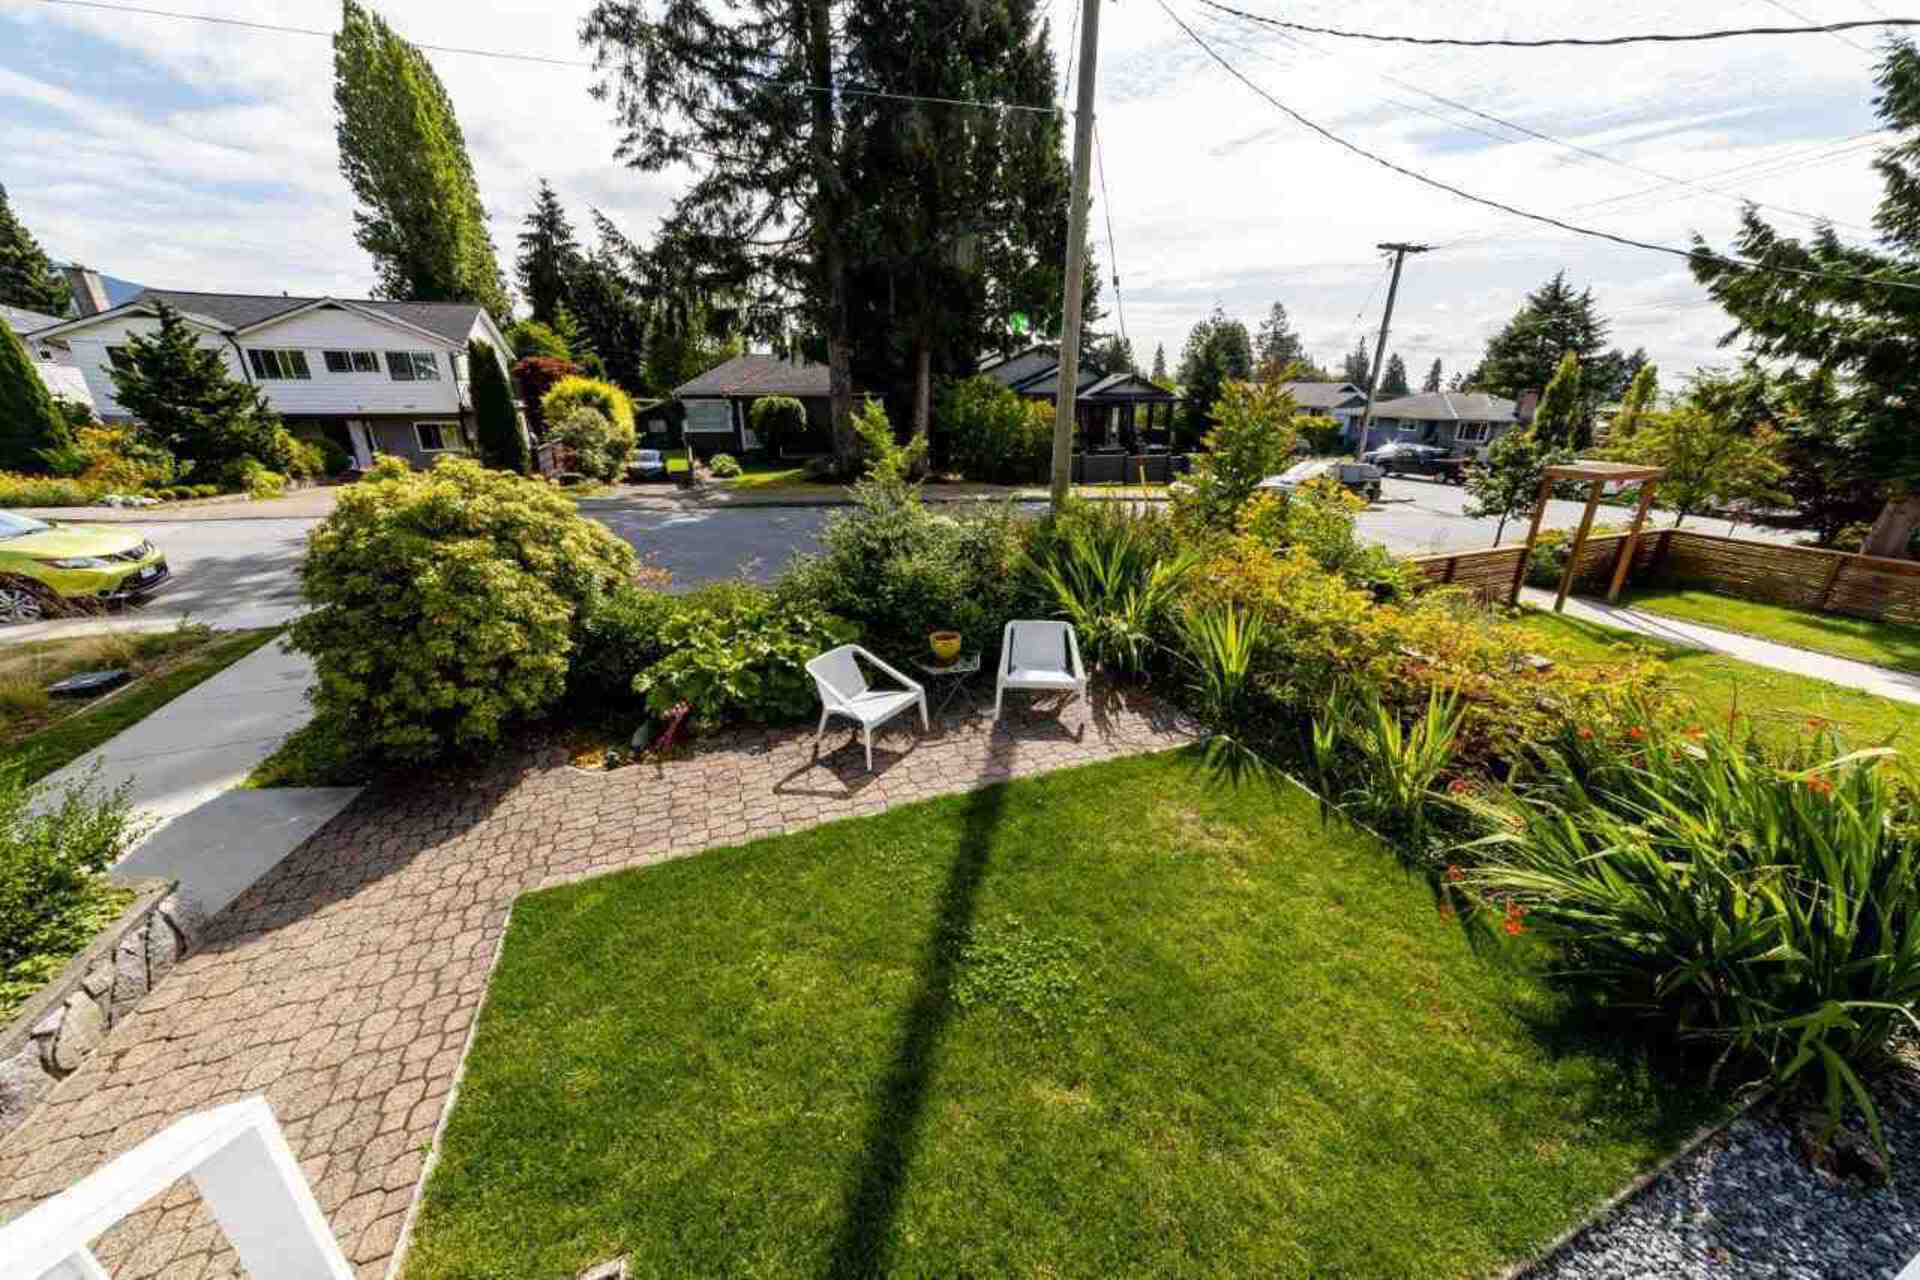 1425-william-avenue-boulevard-north-vancouver-35 at 1425 William Avenue, Boulevard, North Vancouver